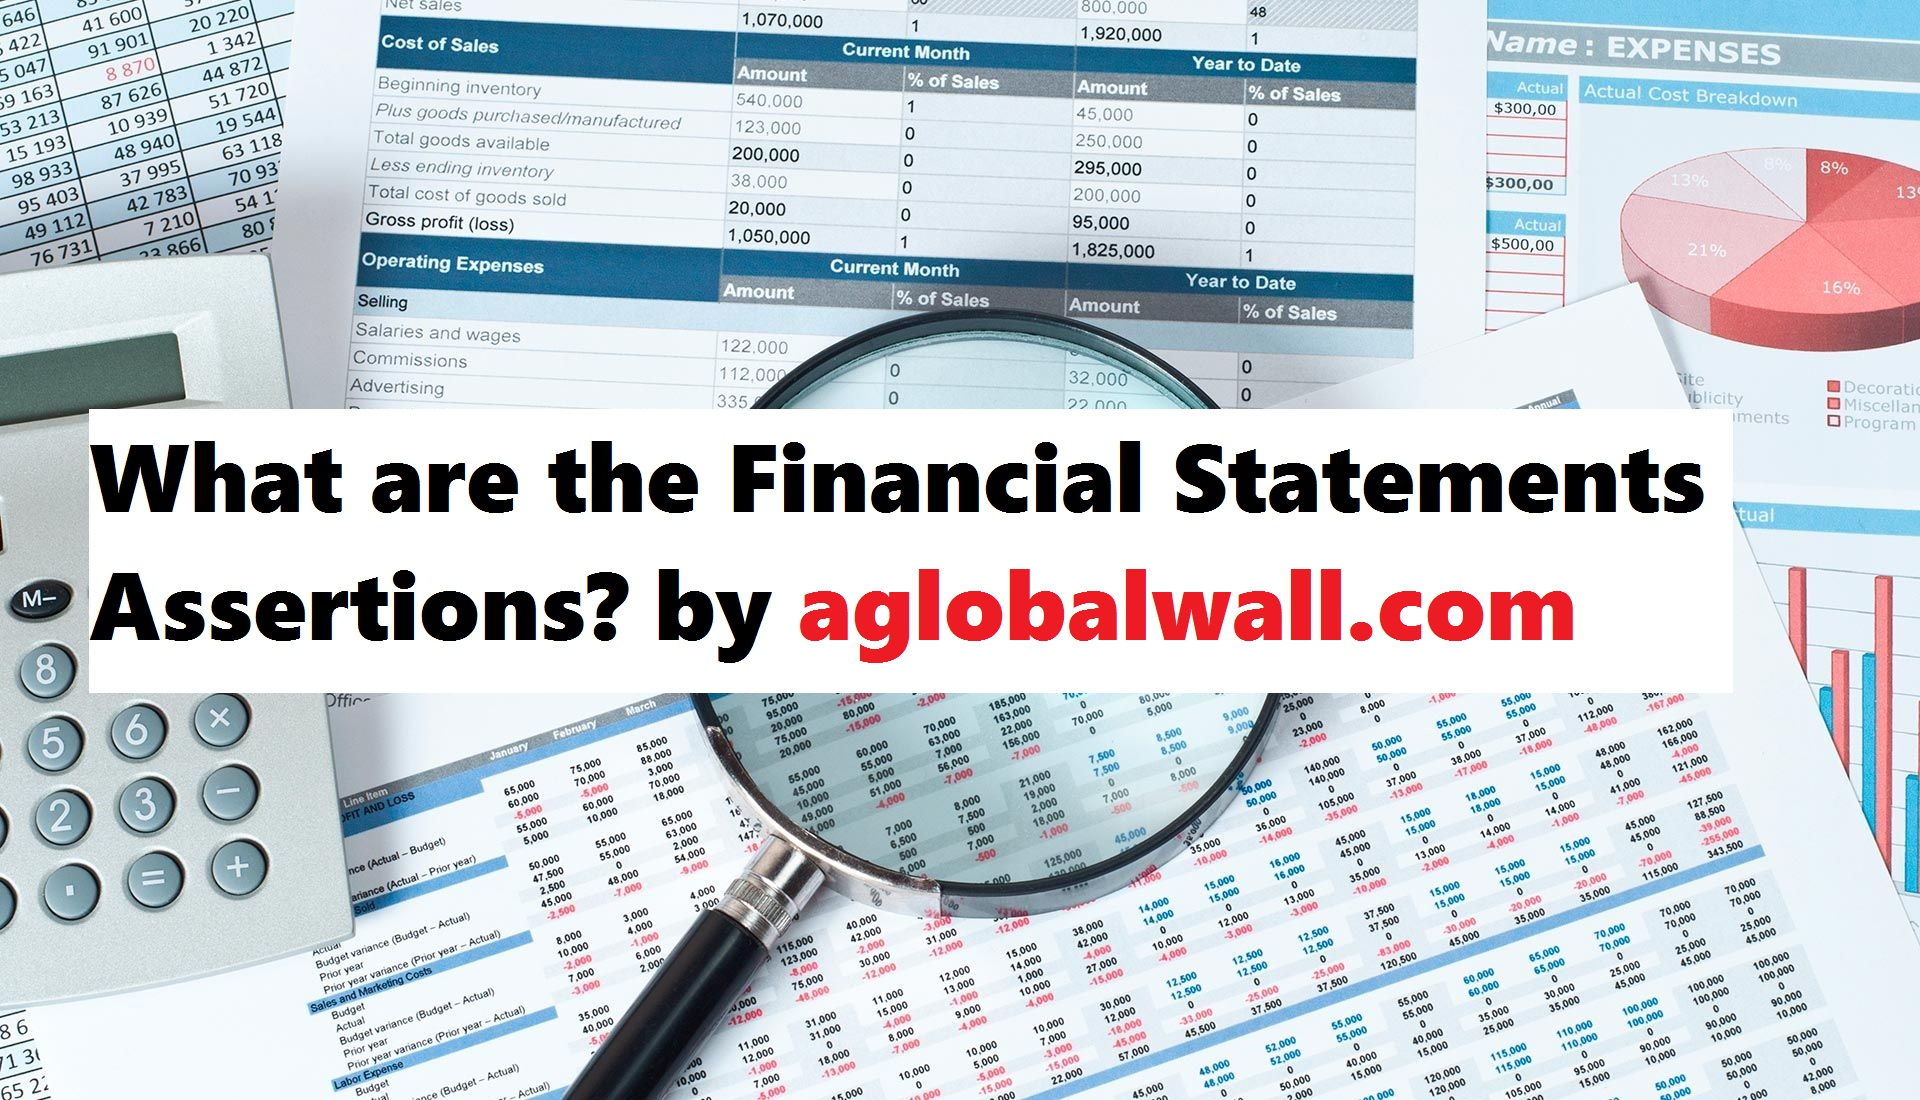 What are the Financial Statements Assertions